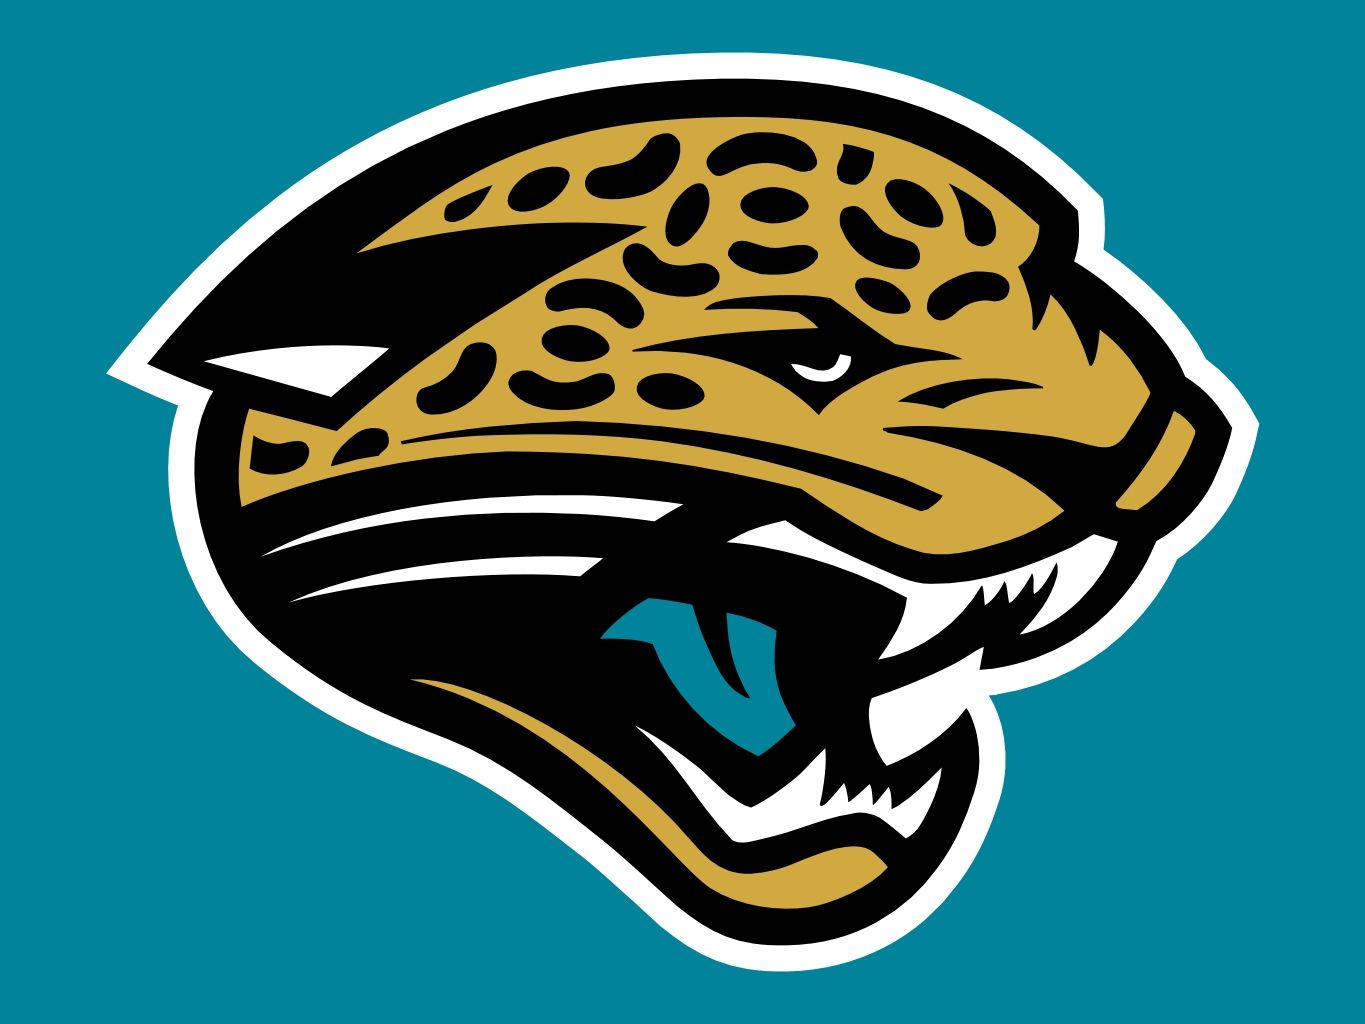 reputable site 573e3 79c54 Jacksonville Jaguars Fan Shop is an online store that offers ...